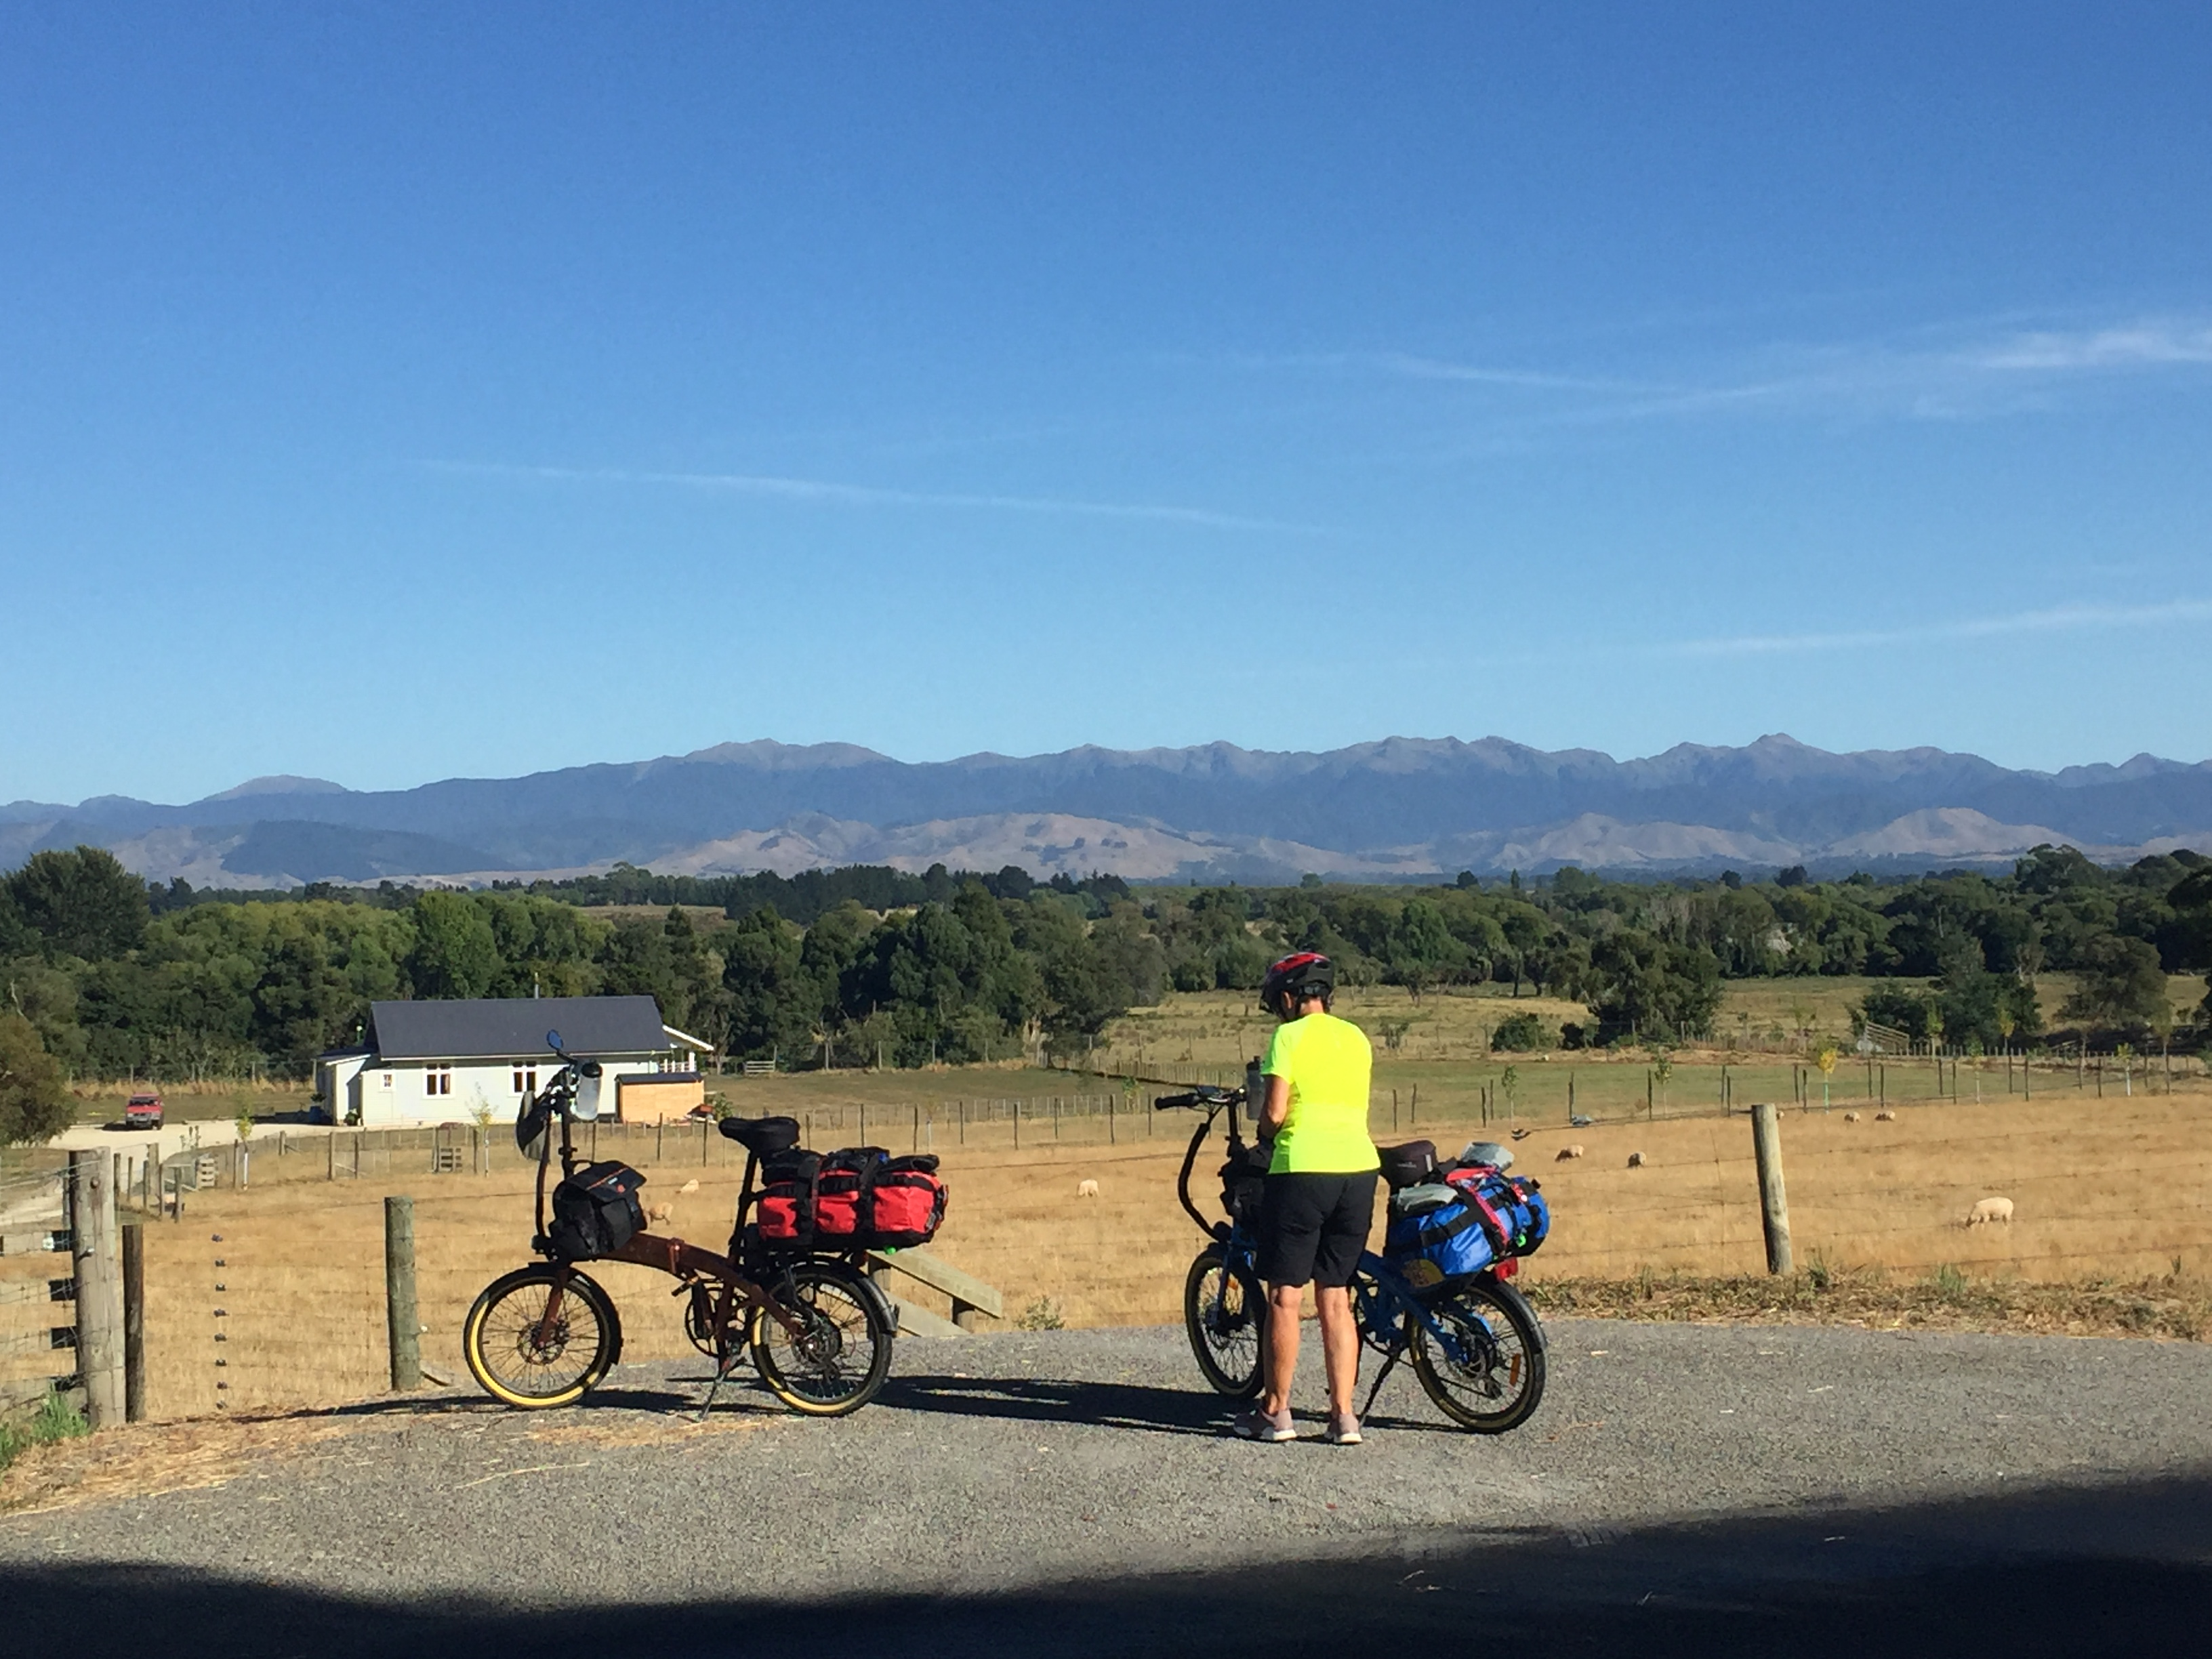 Kiwi bike trip: The last leg to Wellington